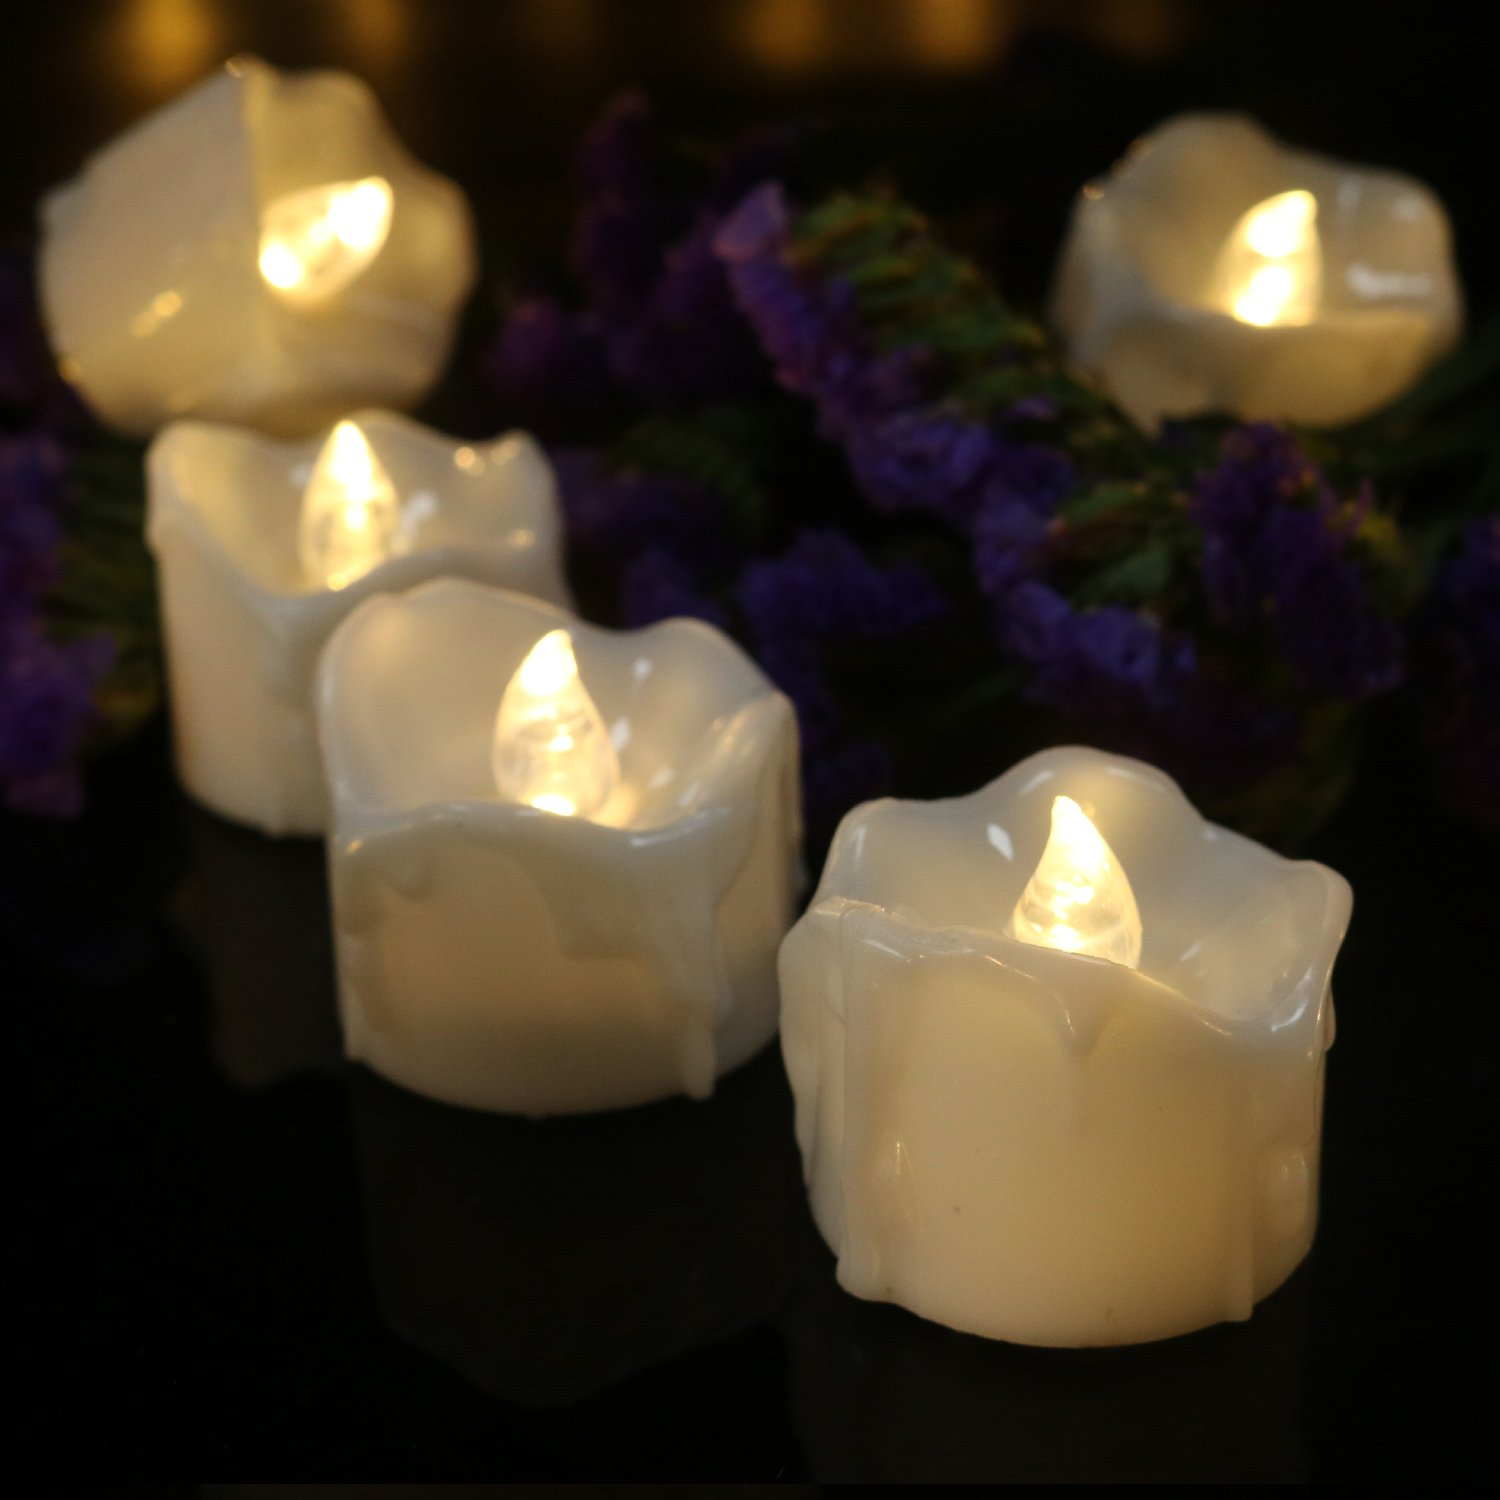 Pack of 96 LED Timer Candles Warm White Flickering Flameless Tealight Electric Votive for Wedding Party Halloween Christmas House Table Wall Garden Decoration